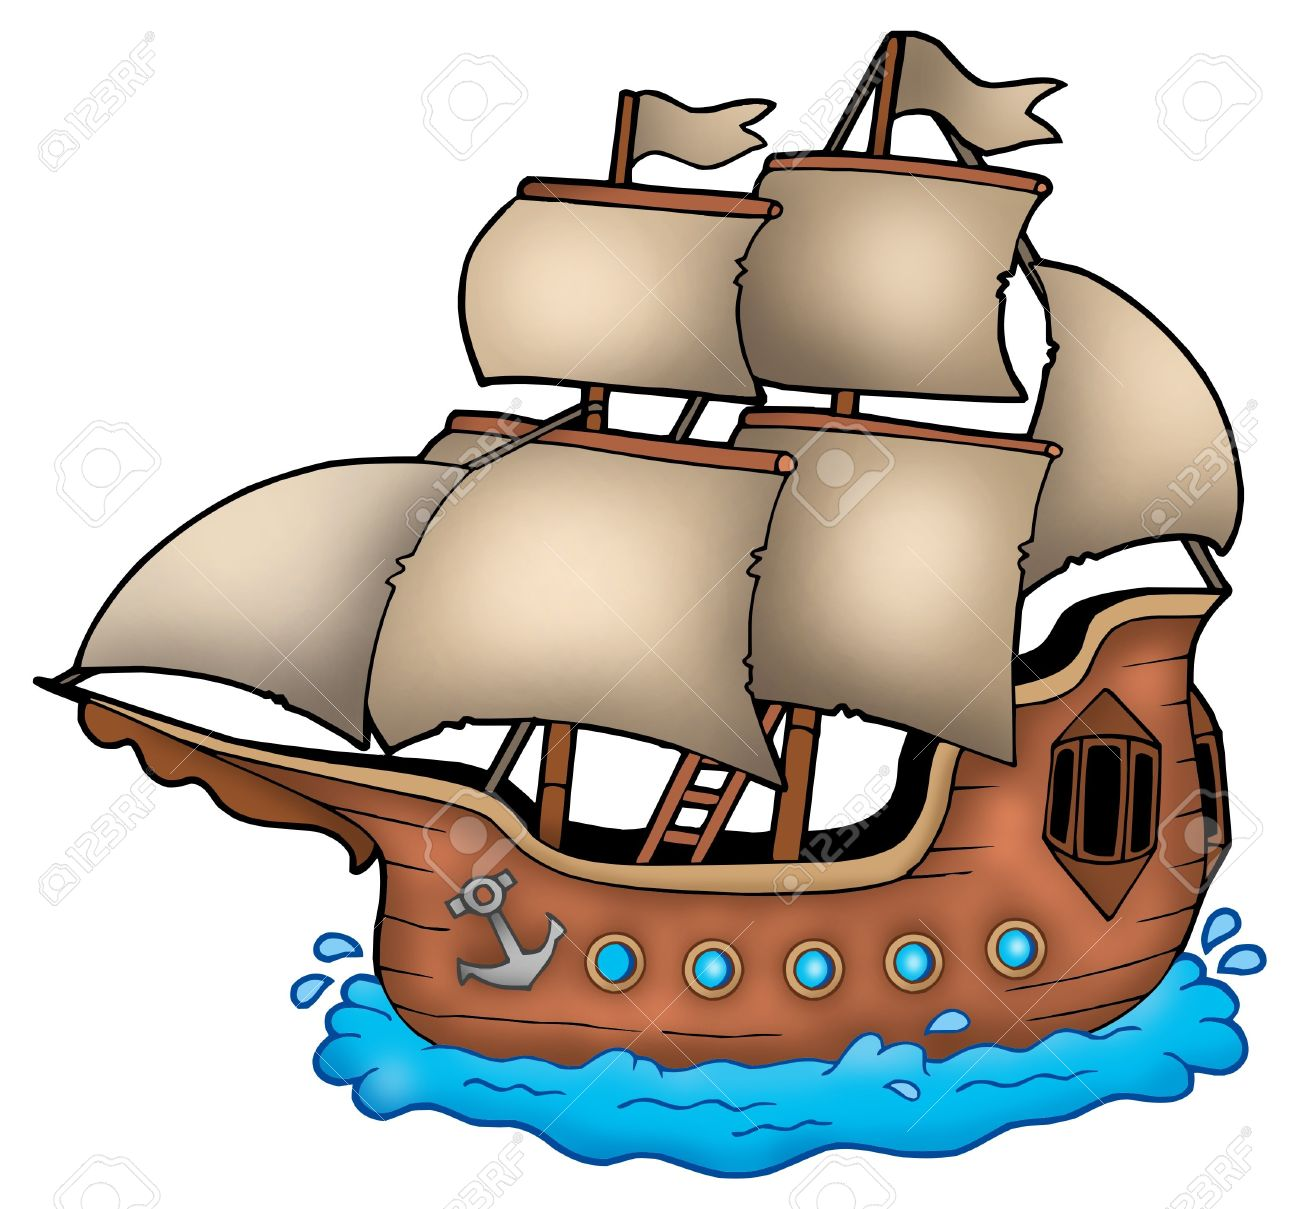 Sailboat free download best. Boat clipart cartoon